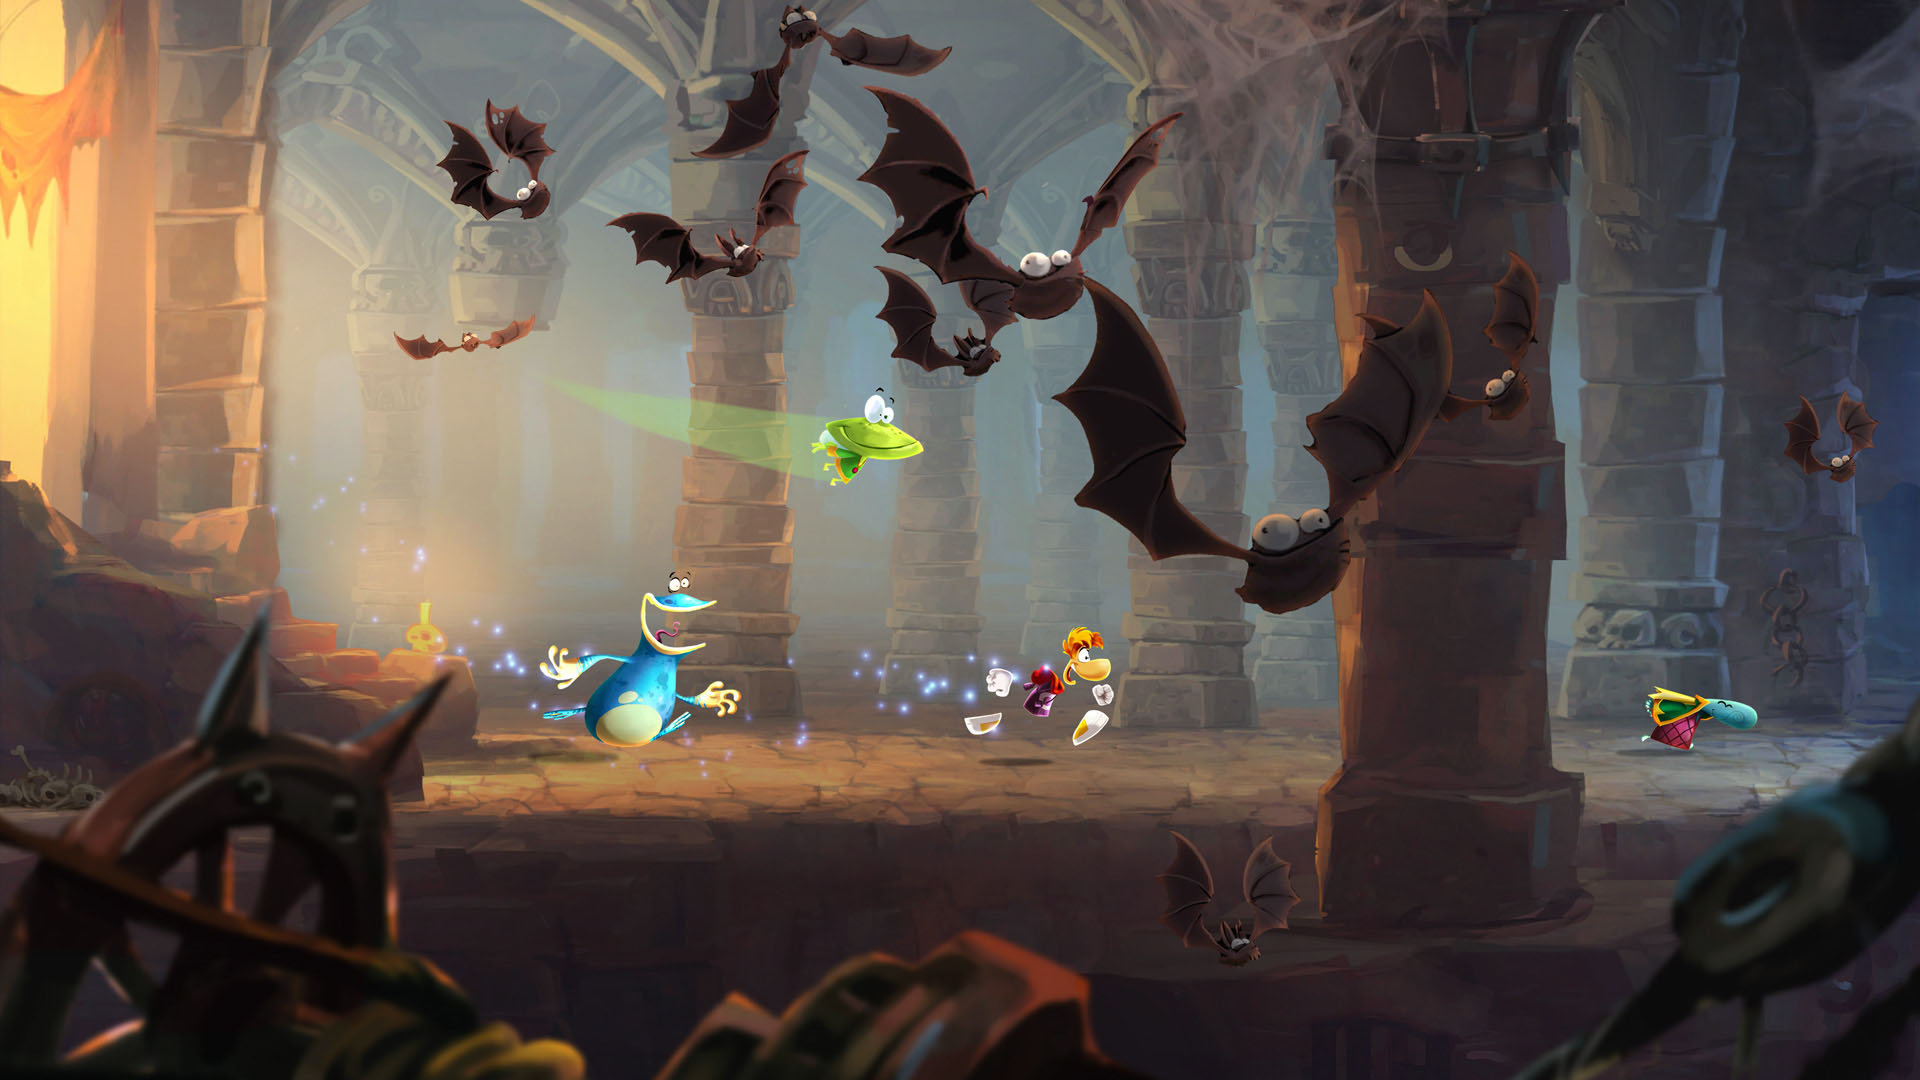 Exclusive 'Rayman Legends' demo coming to the Wii U